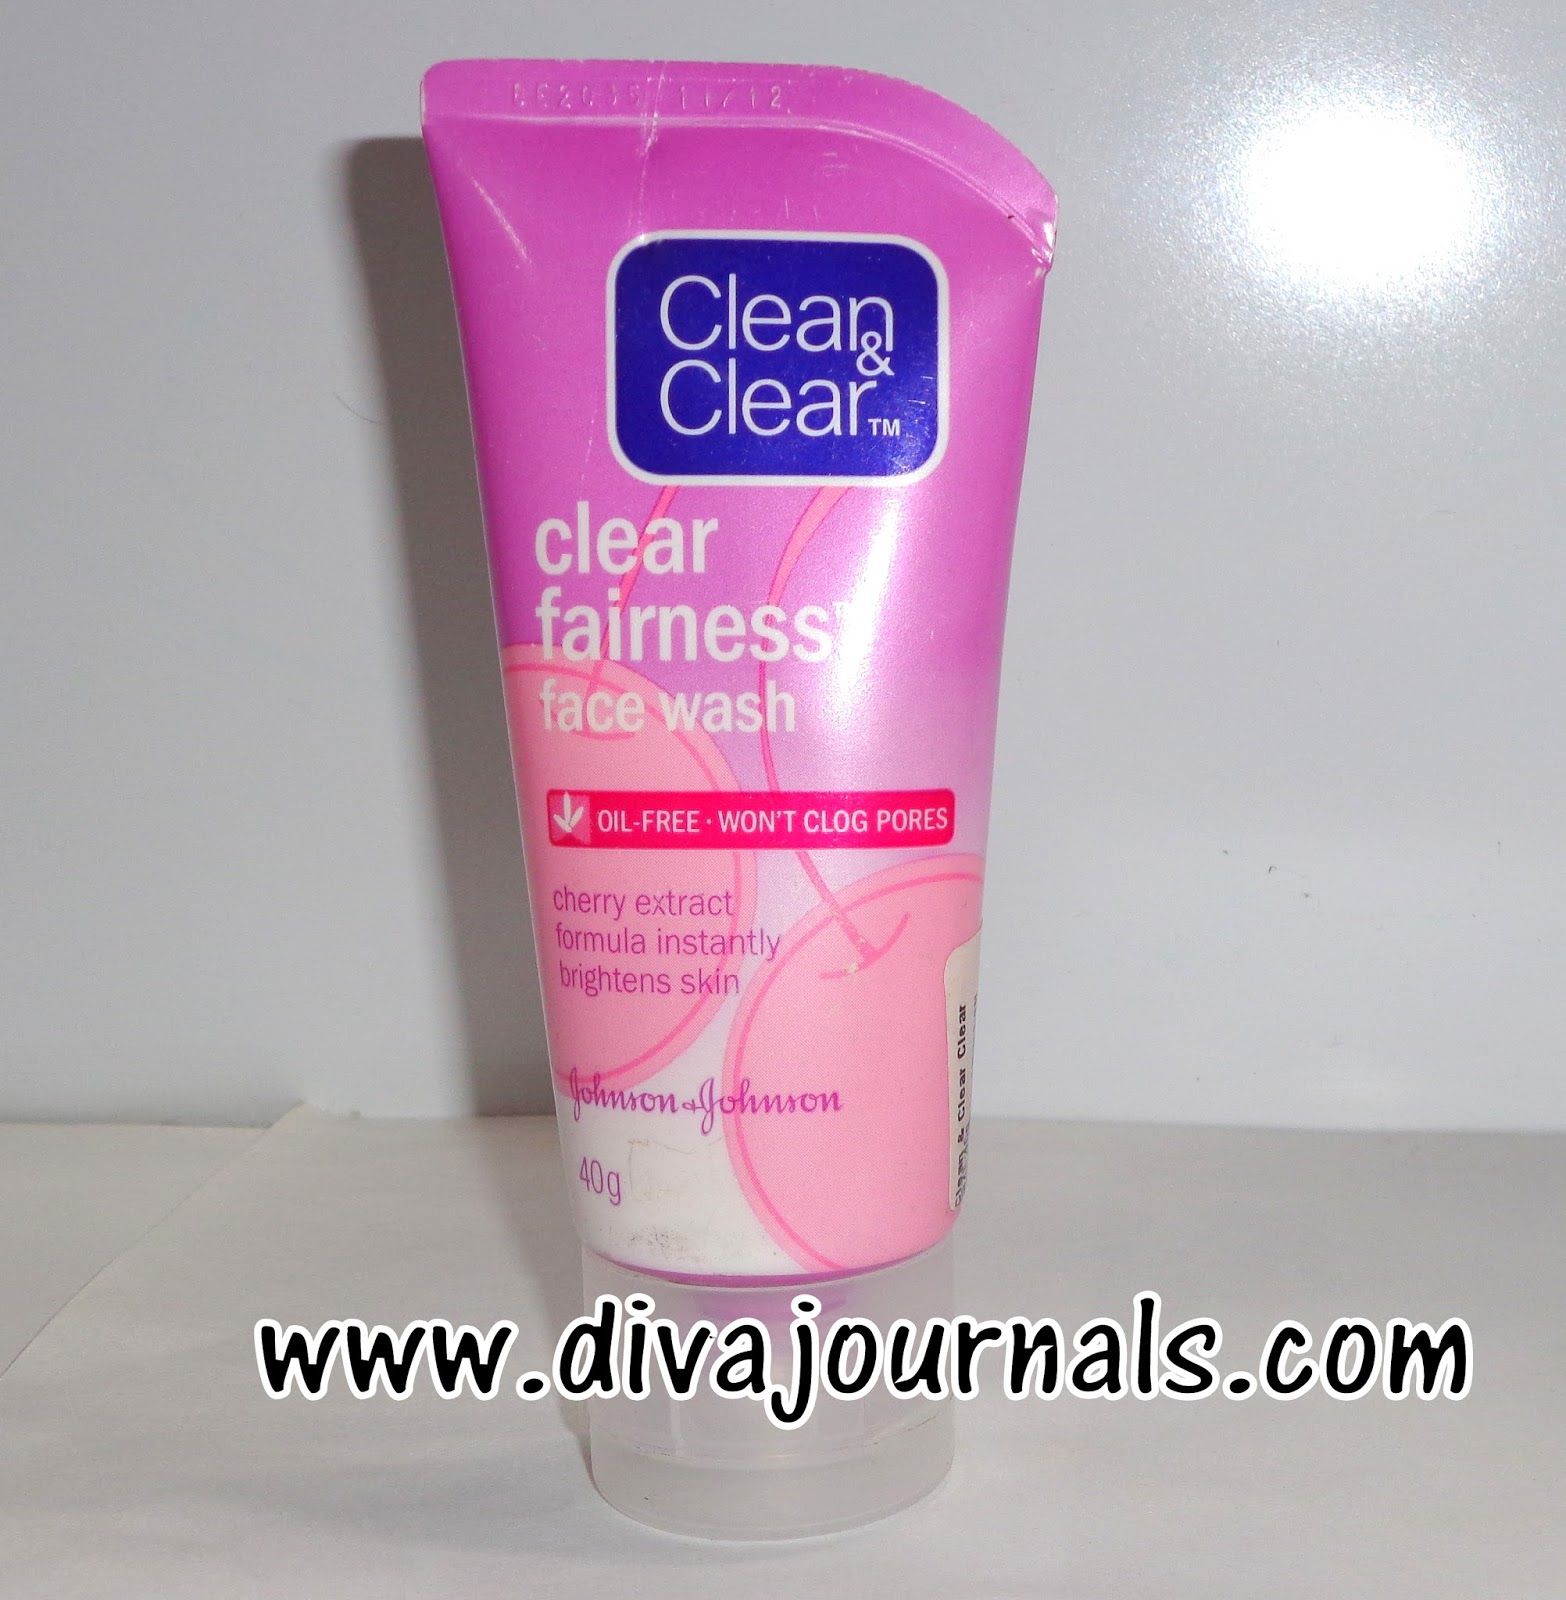 Clean & Clear Fairness Face wash Review